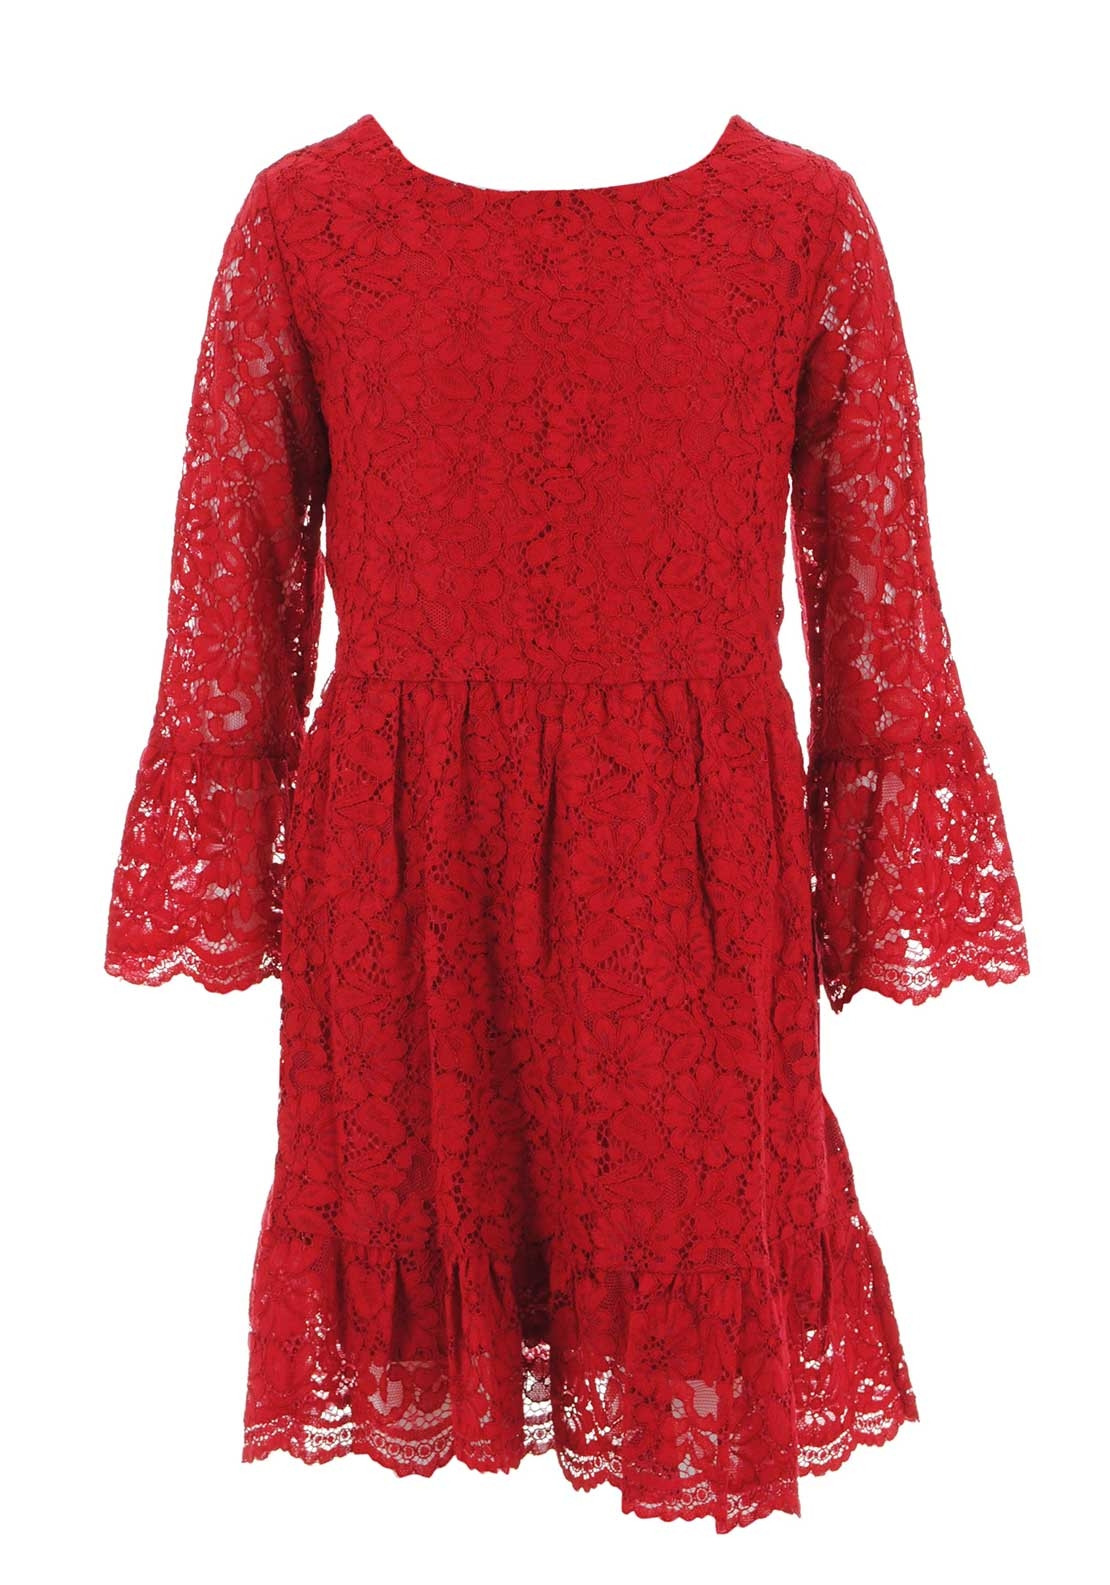 1382b00703a67 Mayoral Older Girls Lace Dress, Red | McElhinneys